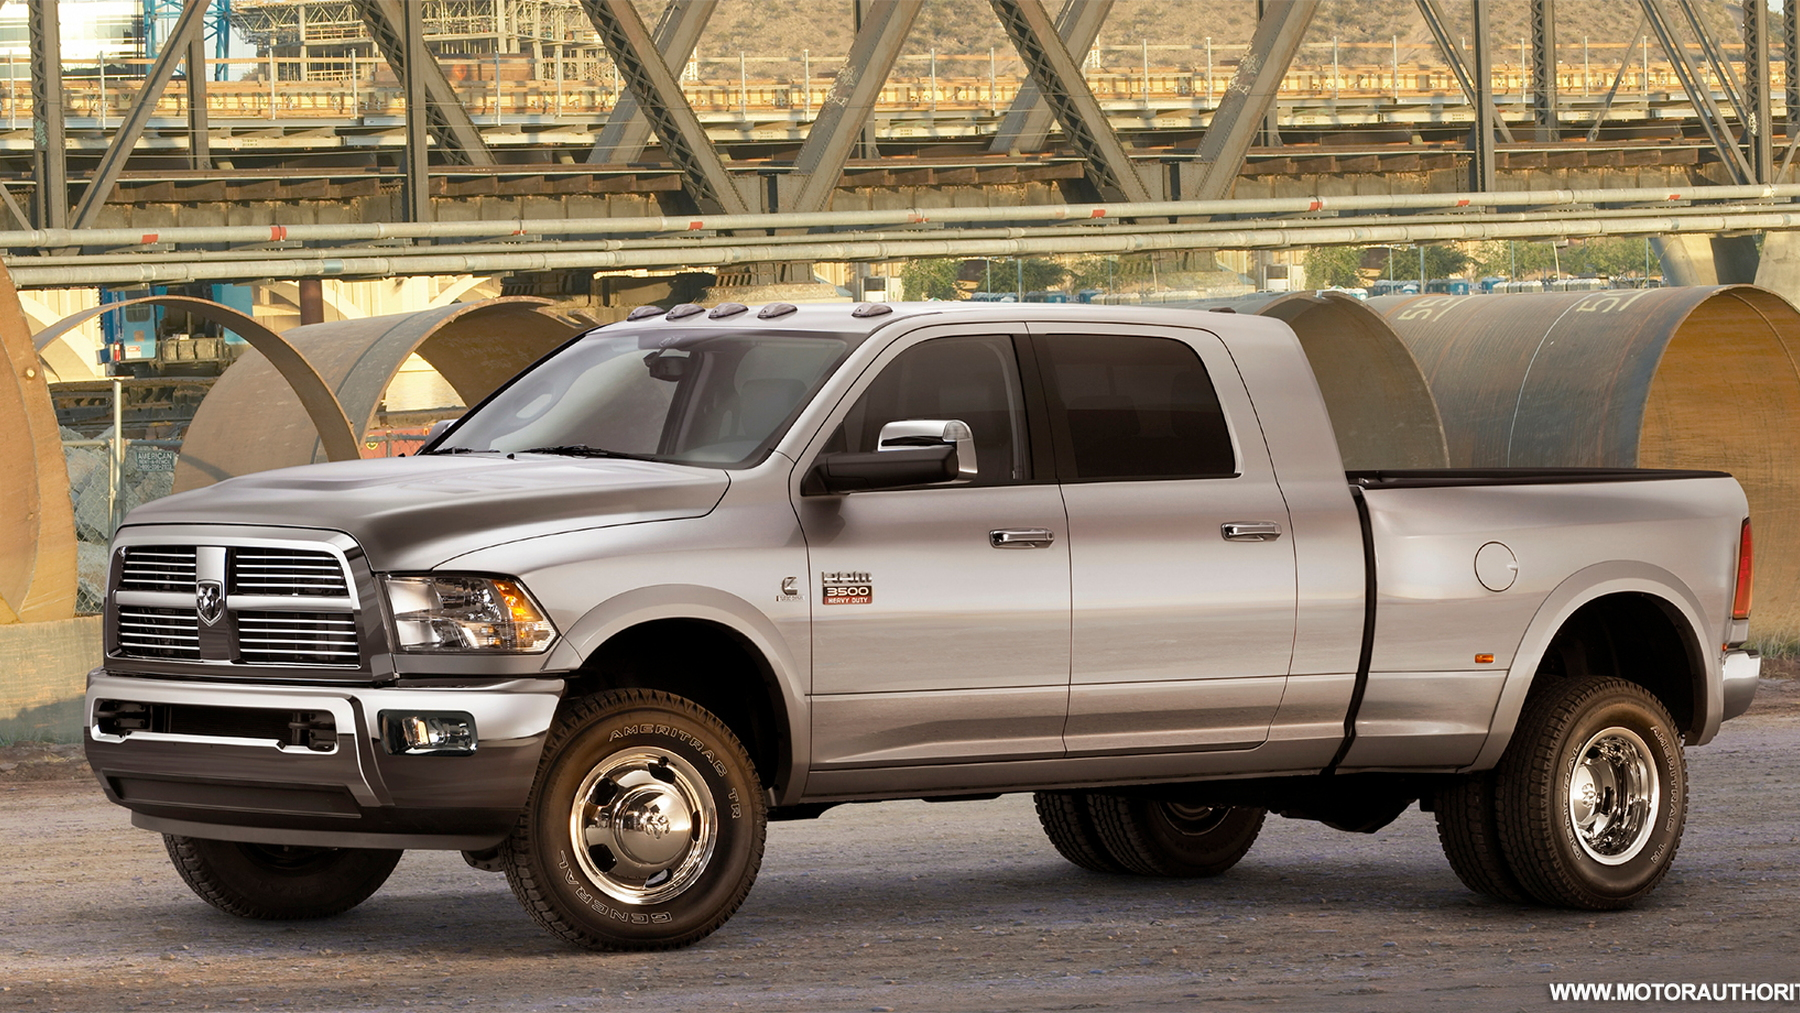 2010 dodge ram heavy duty 2500 3500 013